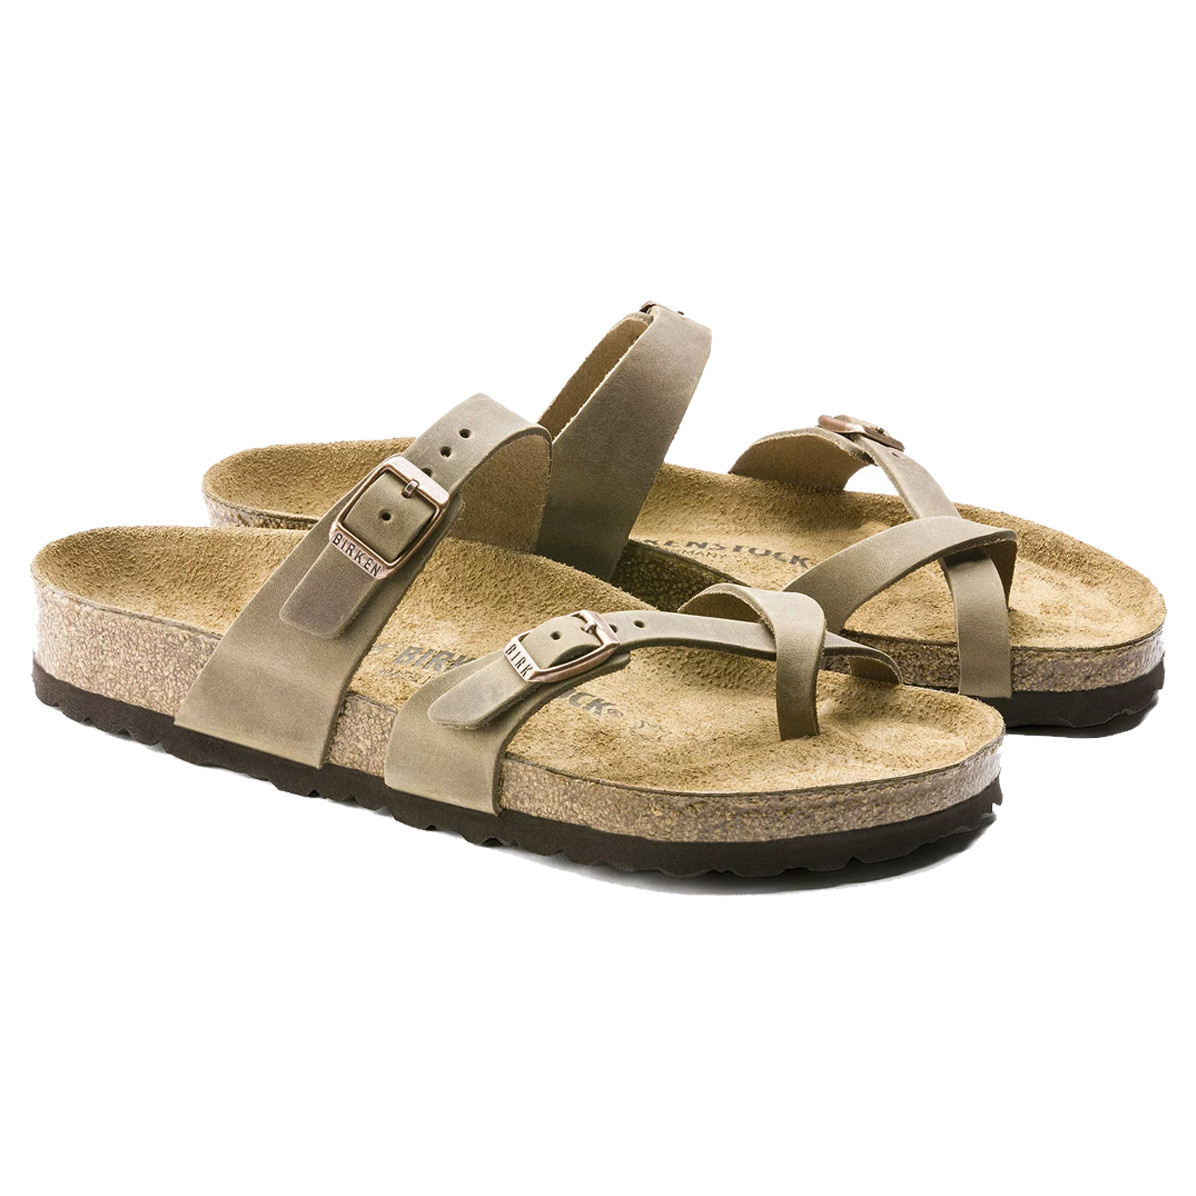 Birkenstock Birkenstock Women's Mayari Tobacco Oiled Regular Fit